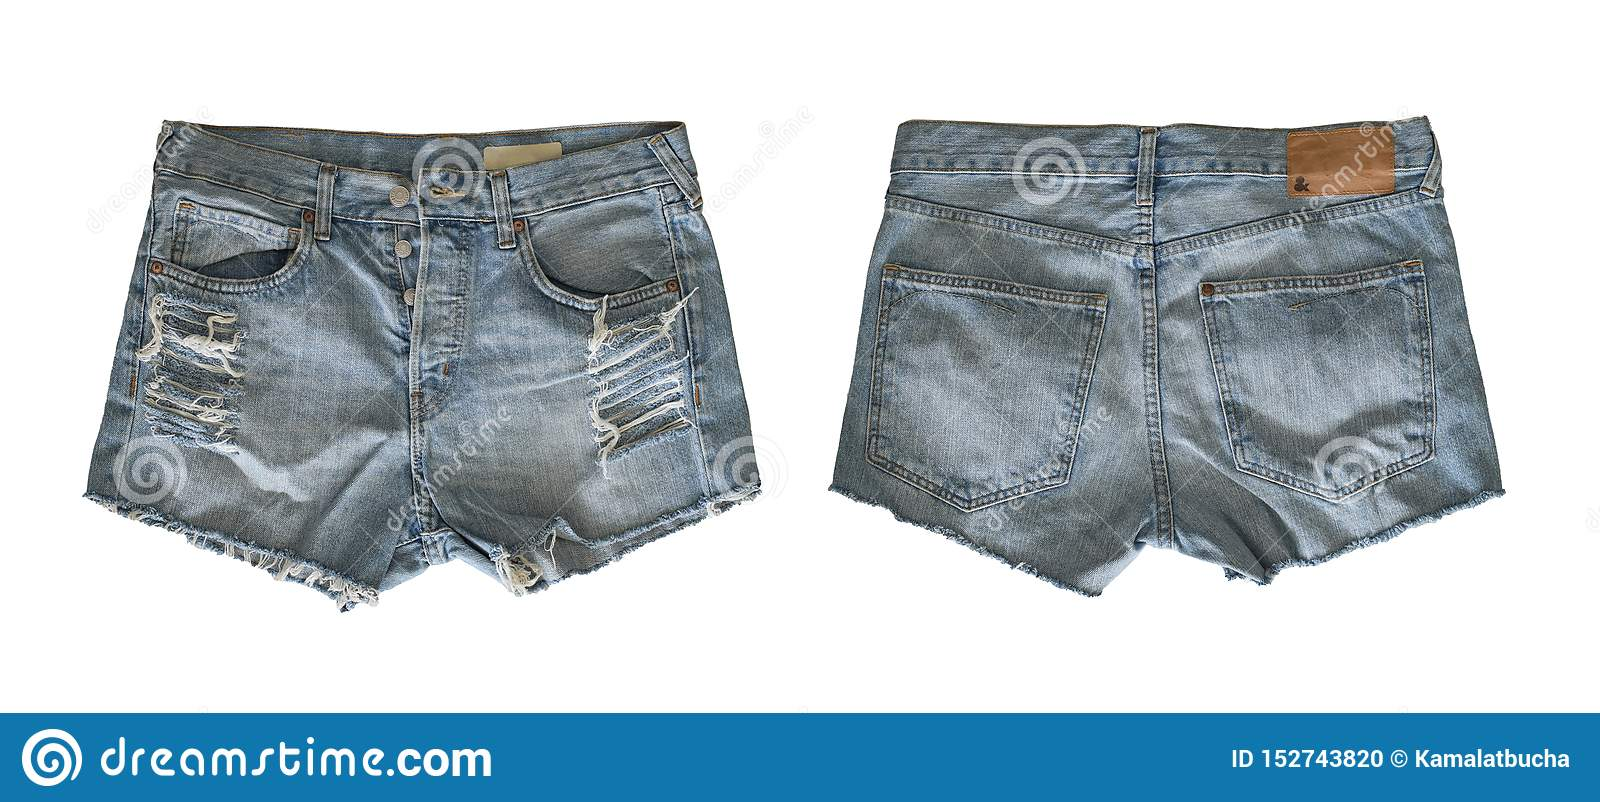 Denim shorts for female